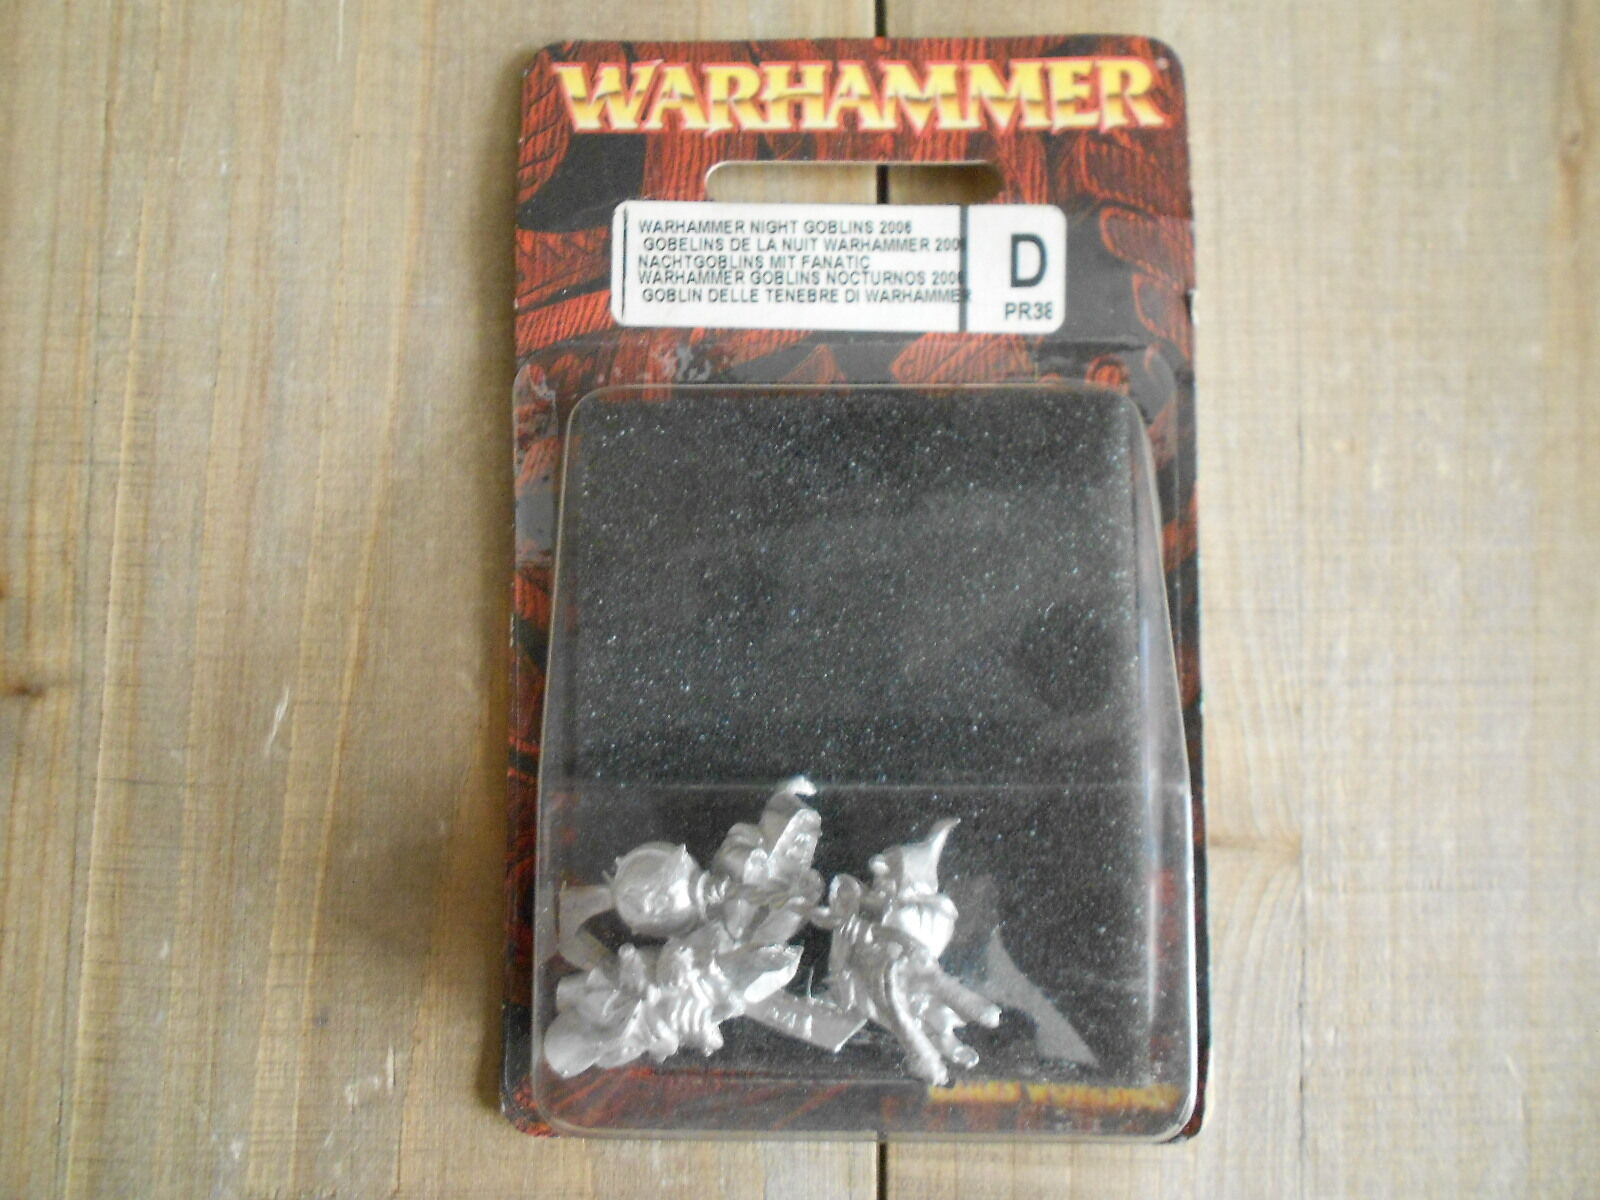 Warhammer - NIGHT GOBLINS 2006 PR38 - Limited Edition - Games Workshop